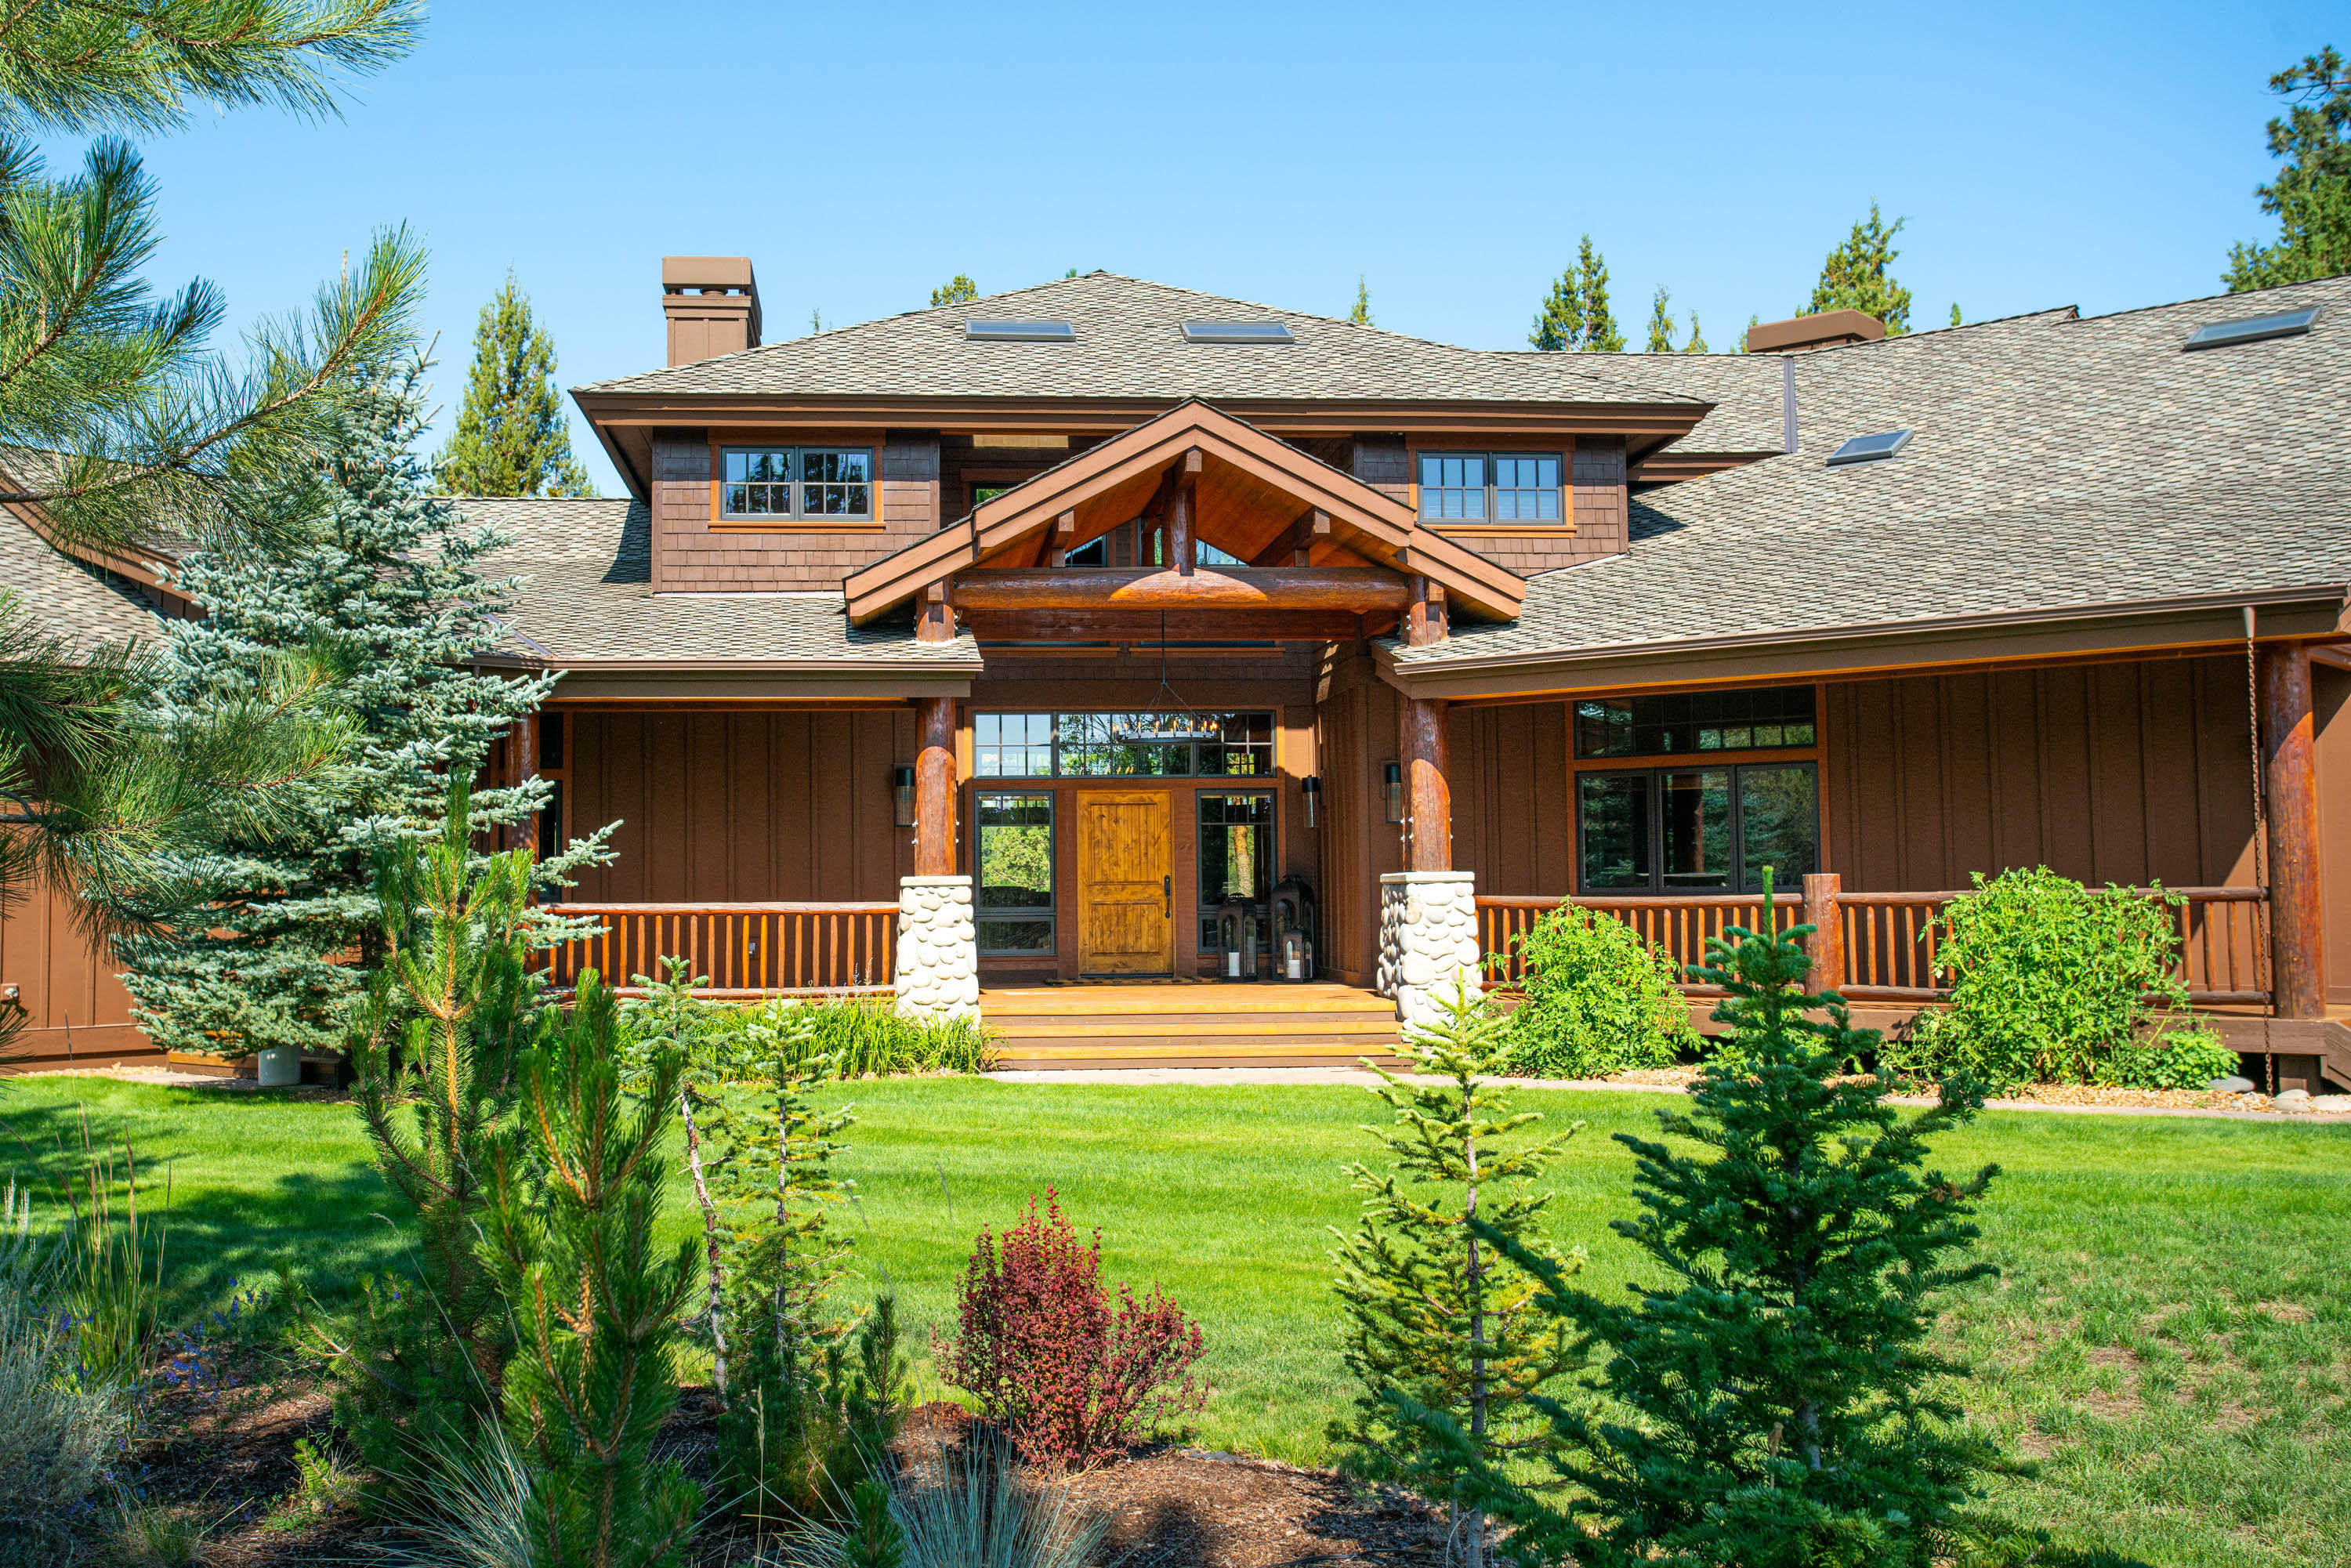 Prime location in Tumalo, peaceful and private, with views of the Cascade Mountains. This extraordinary home, built by Sun Forest Construction, is sited on 5.23 acres, treed and fenced, with underground irrigation. The Northwest design has ranch and log accents, and many quality features. The light filled great room has a majestic stone fireplace and a wall of windows looking over the rear deck and landscaped yard. Perfect for entertaining and family gatherings, the adjoining dining area has a buffet and is open to the spacious kitchen, which features a wall fireplace, large island, breakfast bar and pantry . There is good separation of the master suite, and the guest suite and den, all on the main level. Upstairs, the large loft provides a comfortable space for relaxing. A third guest suite and small office are also up. The large 3-car garage has lots of storage. The barn is extra special, with 3 horse stalls, storage and an office, plus an outdoor corral. Truly a special property!